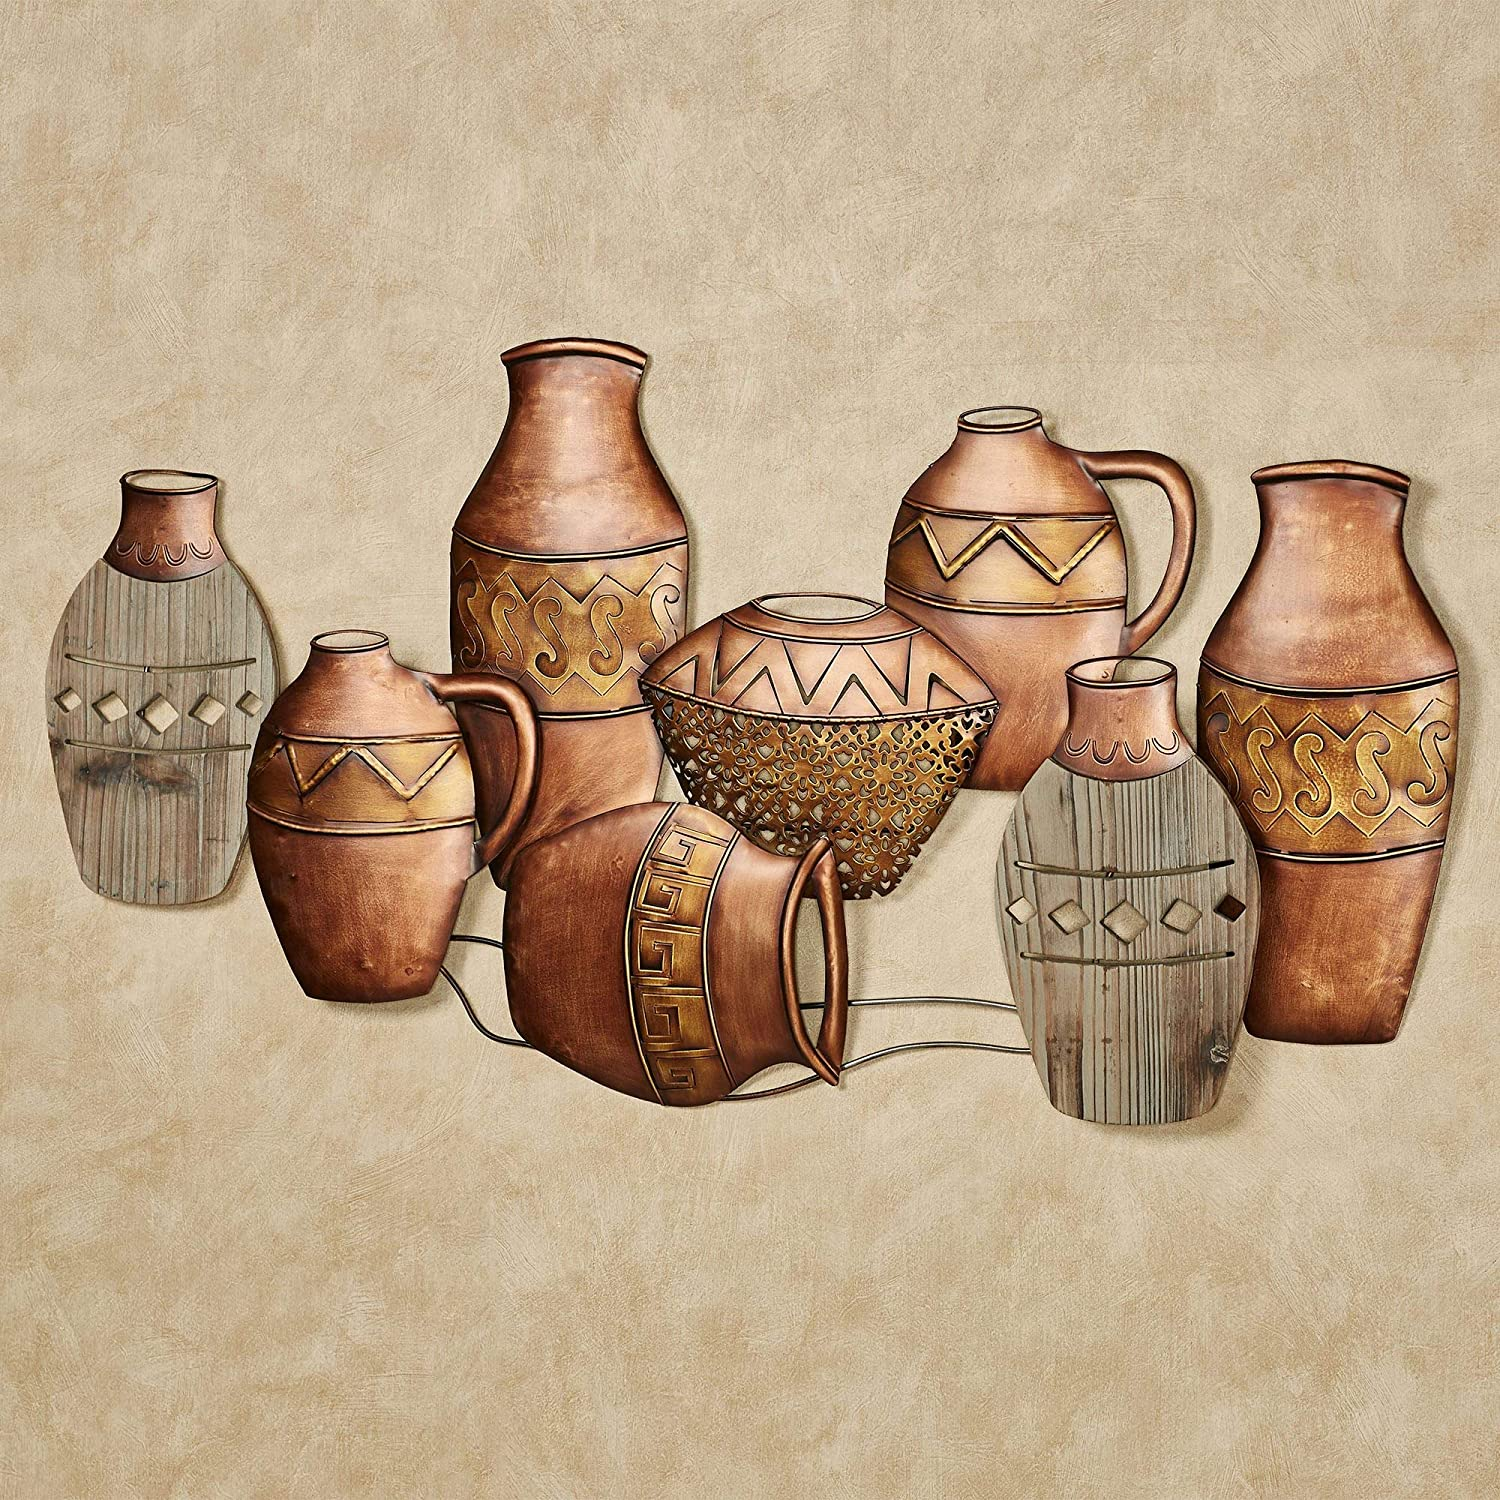 """Ancient Pottery Southwest Wall Art Copper - 40"""" W x 2"""" D x 21"""" H - Hand-painted - Vases, Vessels and Pots"""